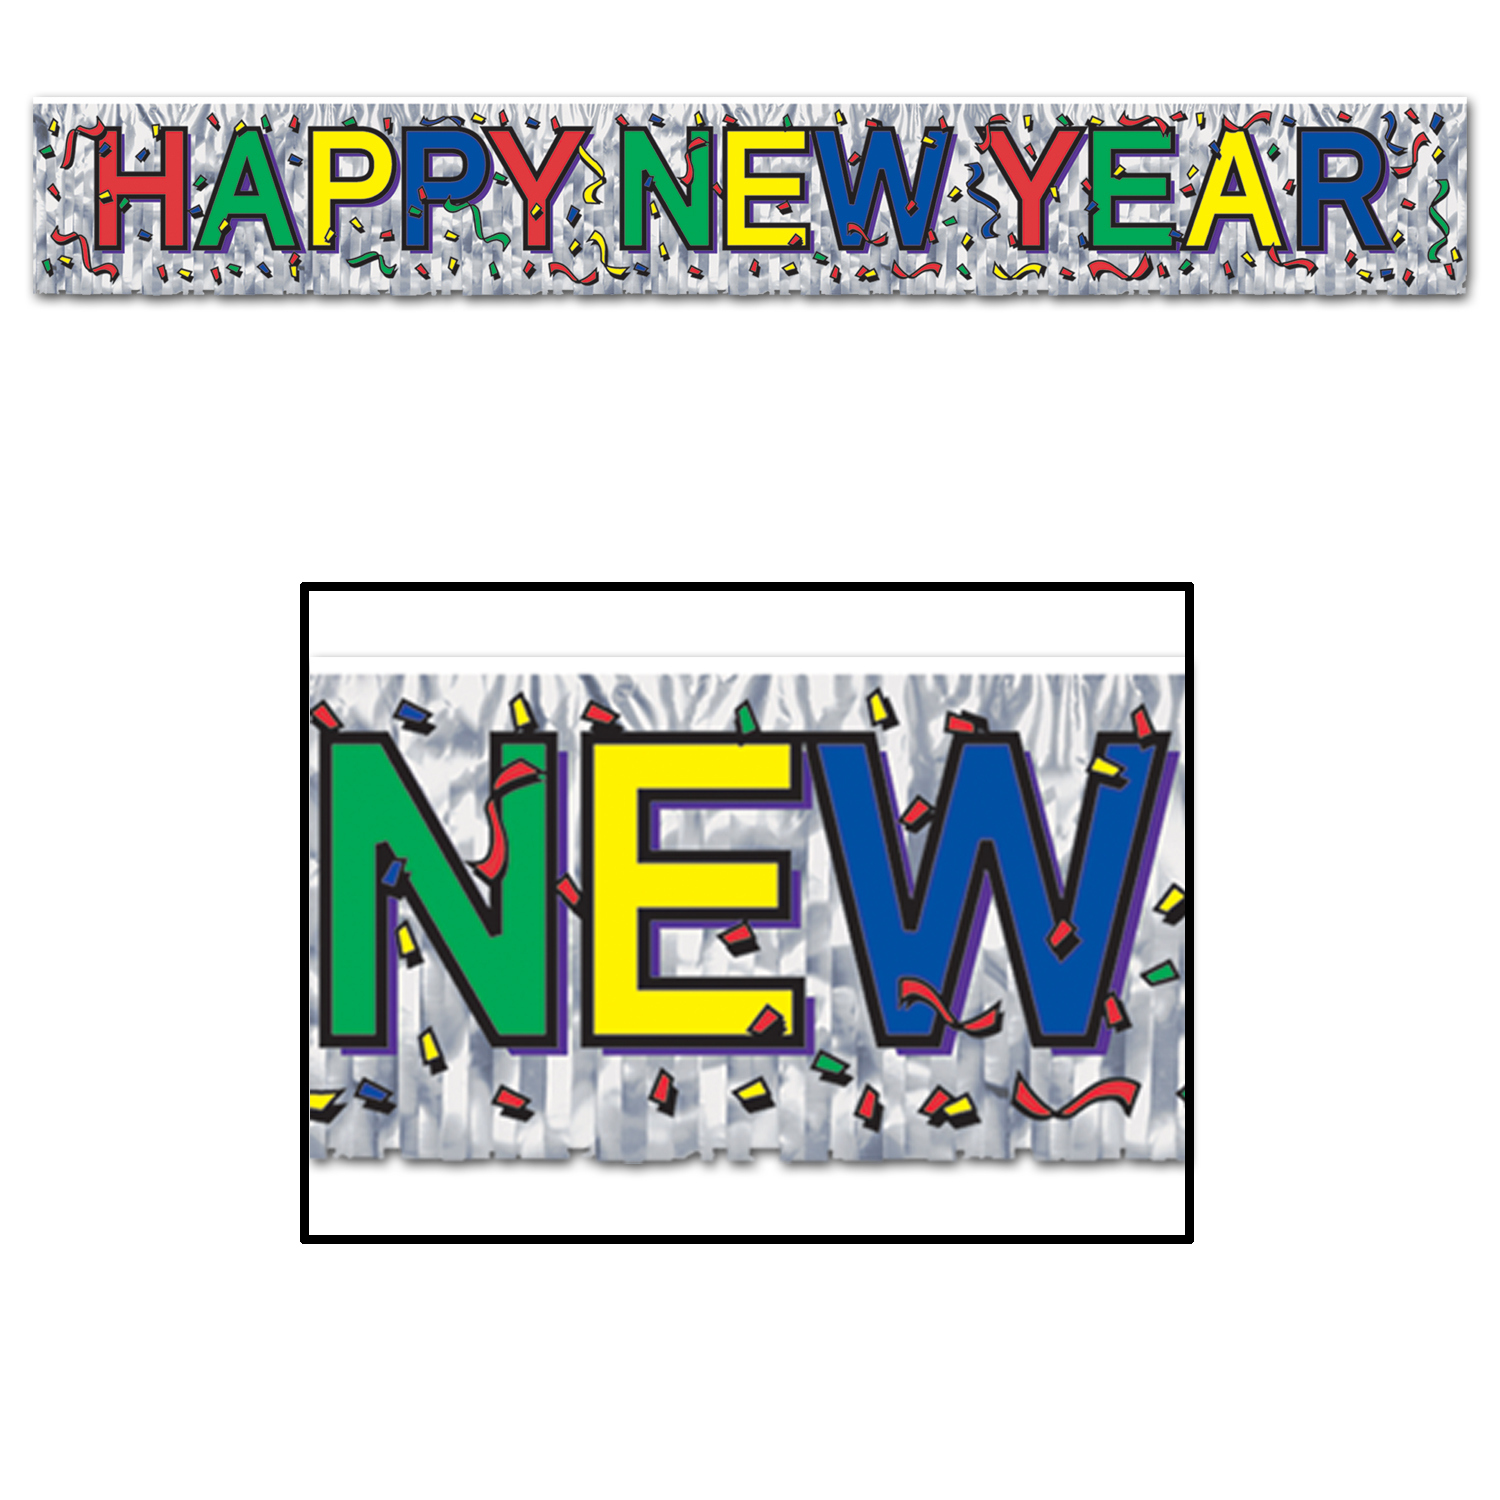 Silver metallic fringe Happy New Year banner with red, green, yellow, and blue alternating lettering along with tiny confetti piece design.